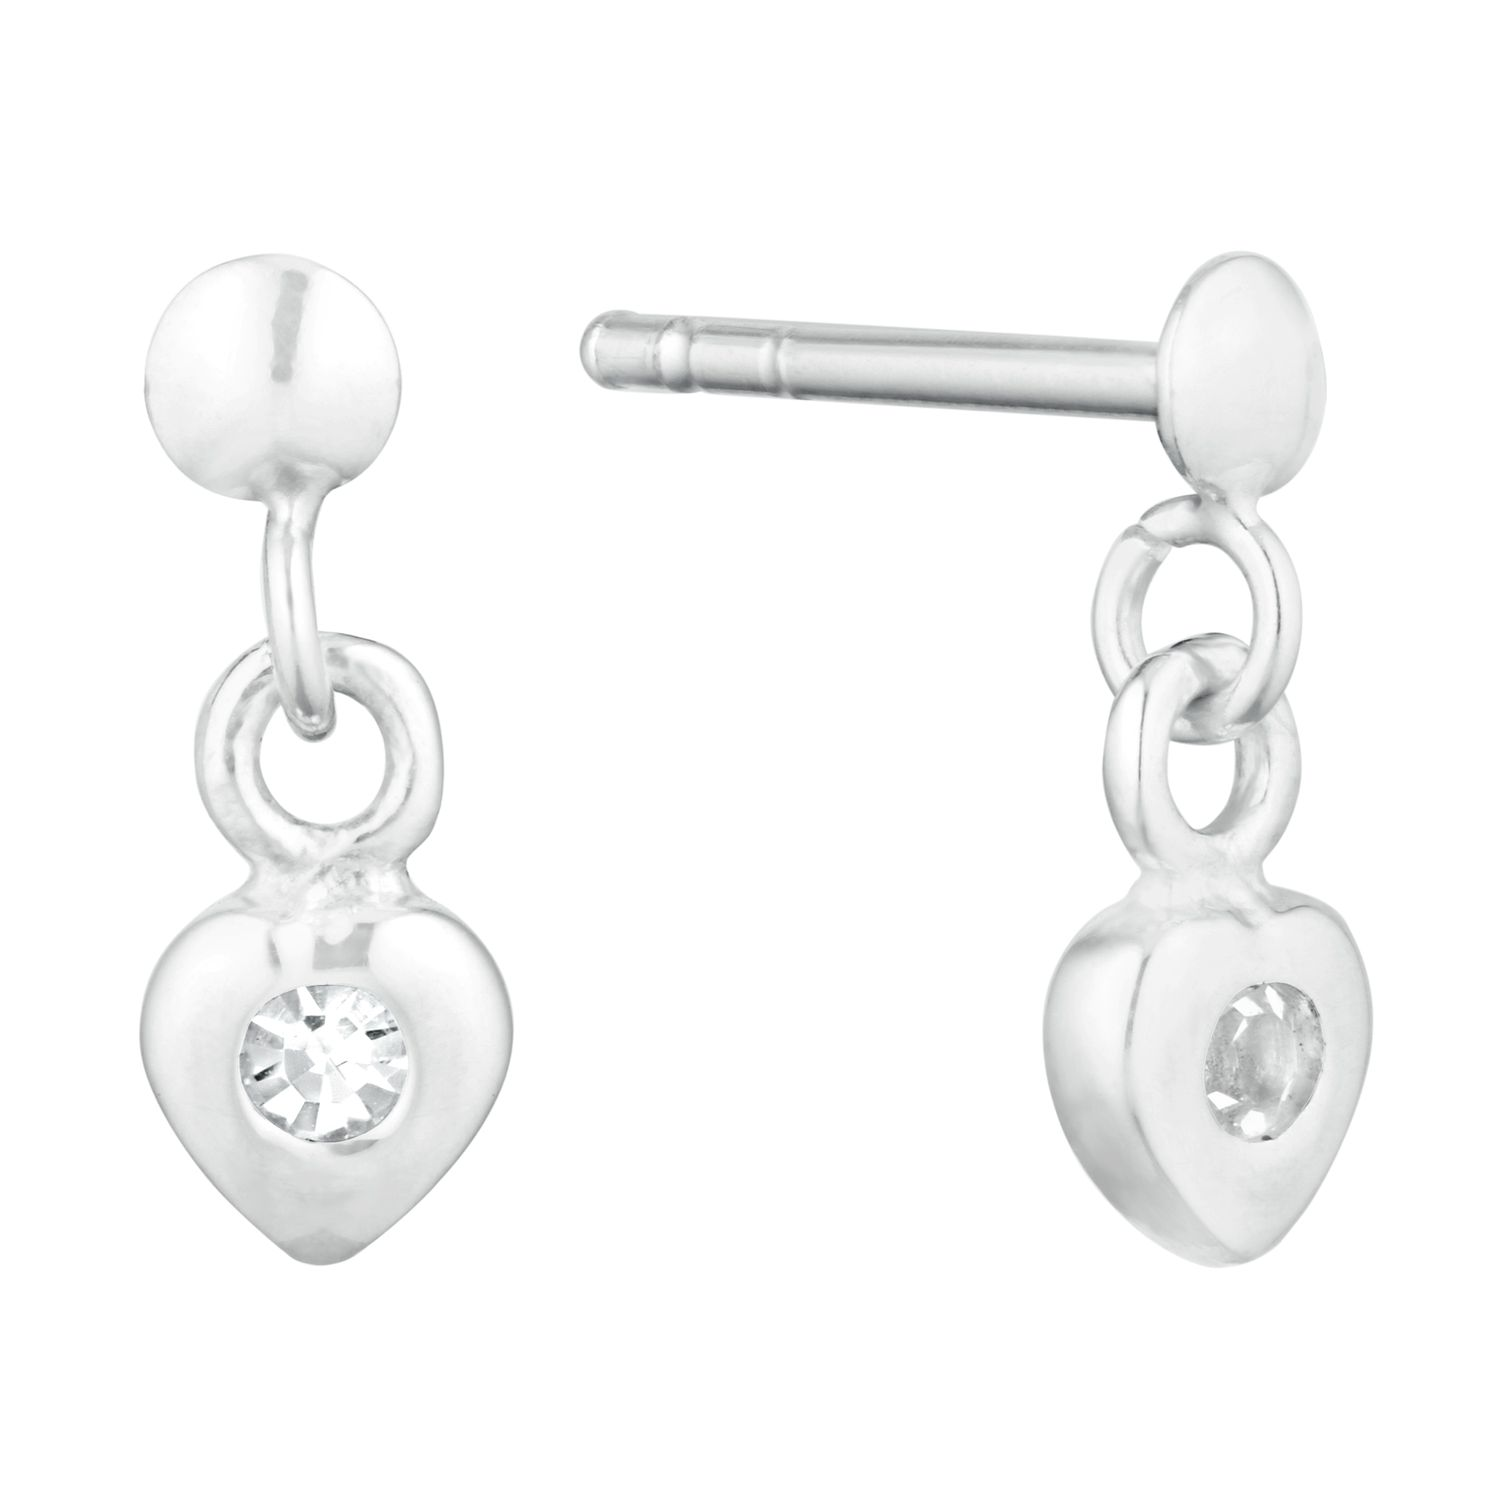 Children's Silver Cubic Zirconia Crystal Heart Drop Earrings - Product number 9664475